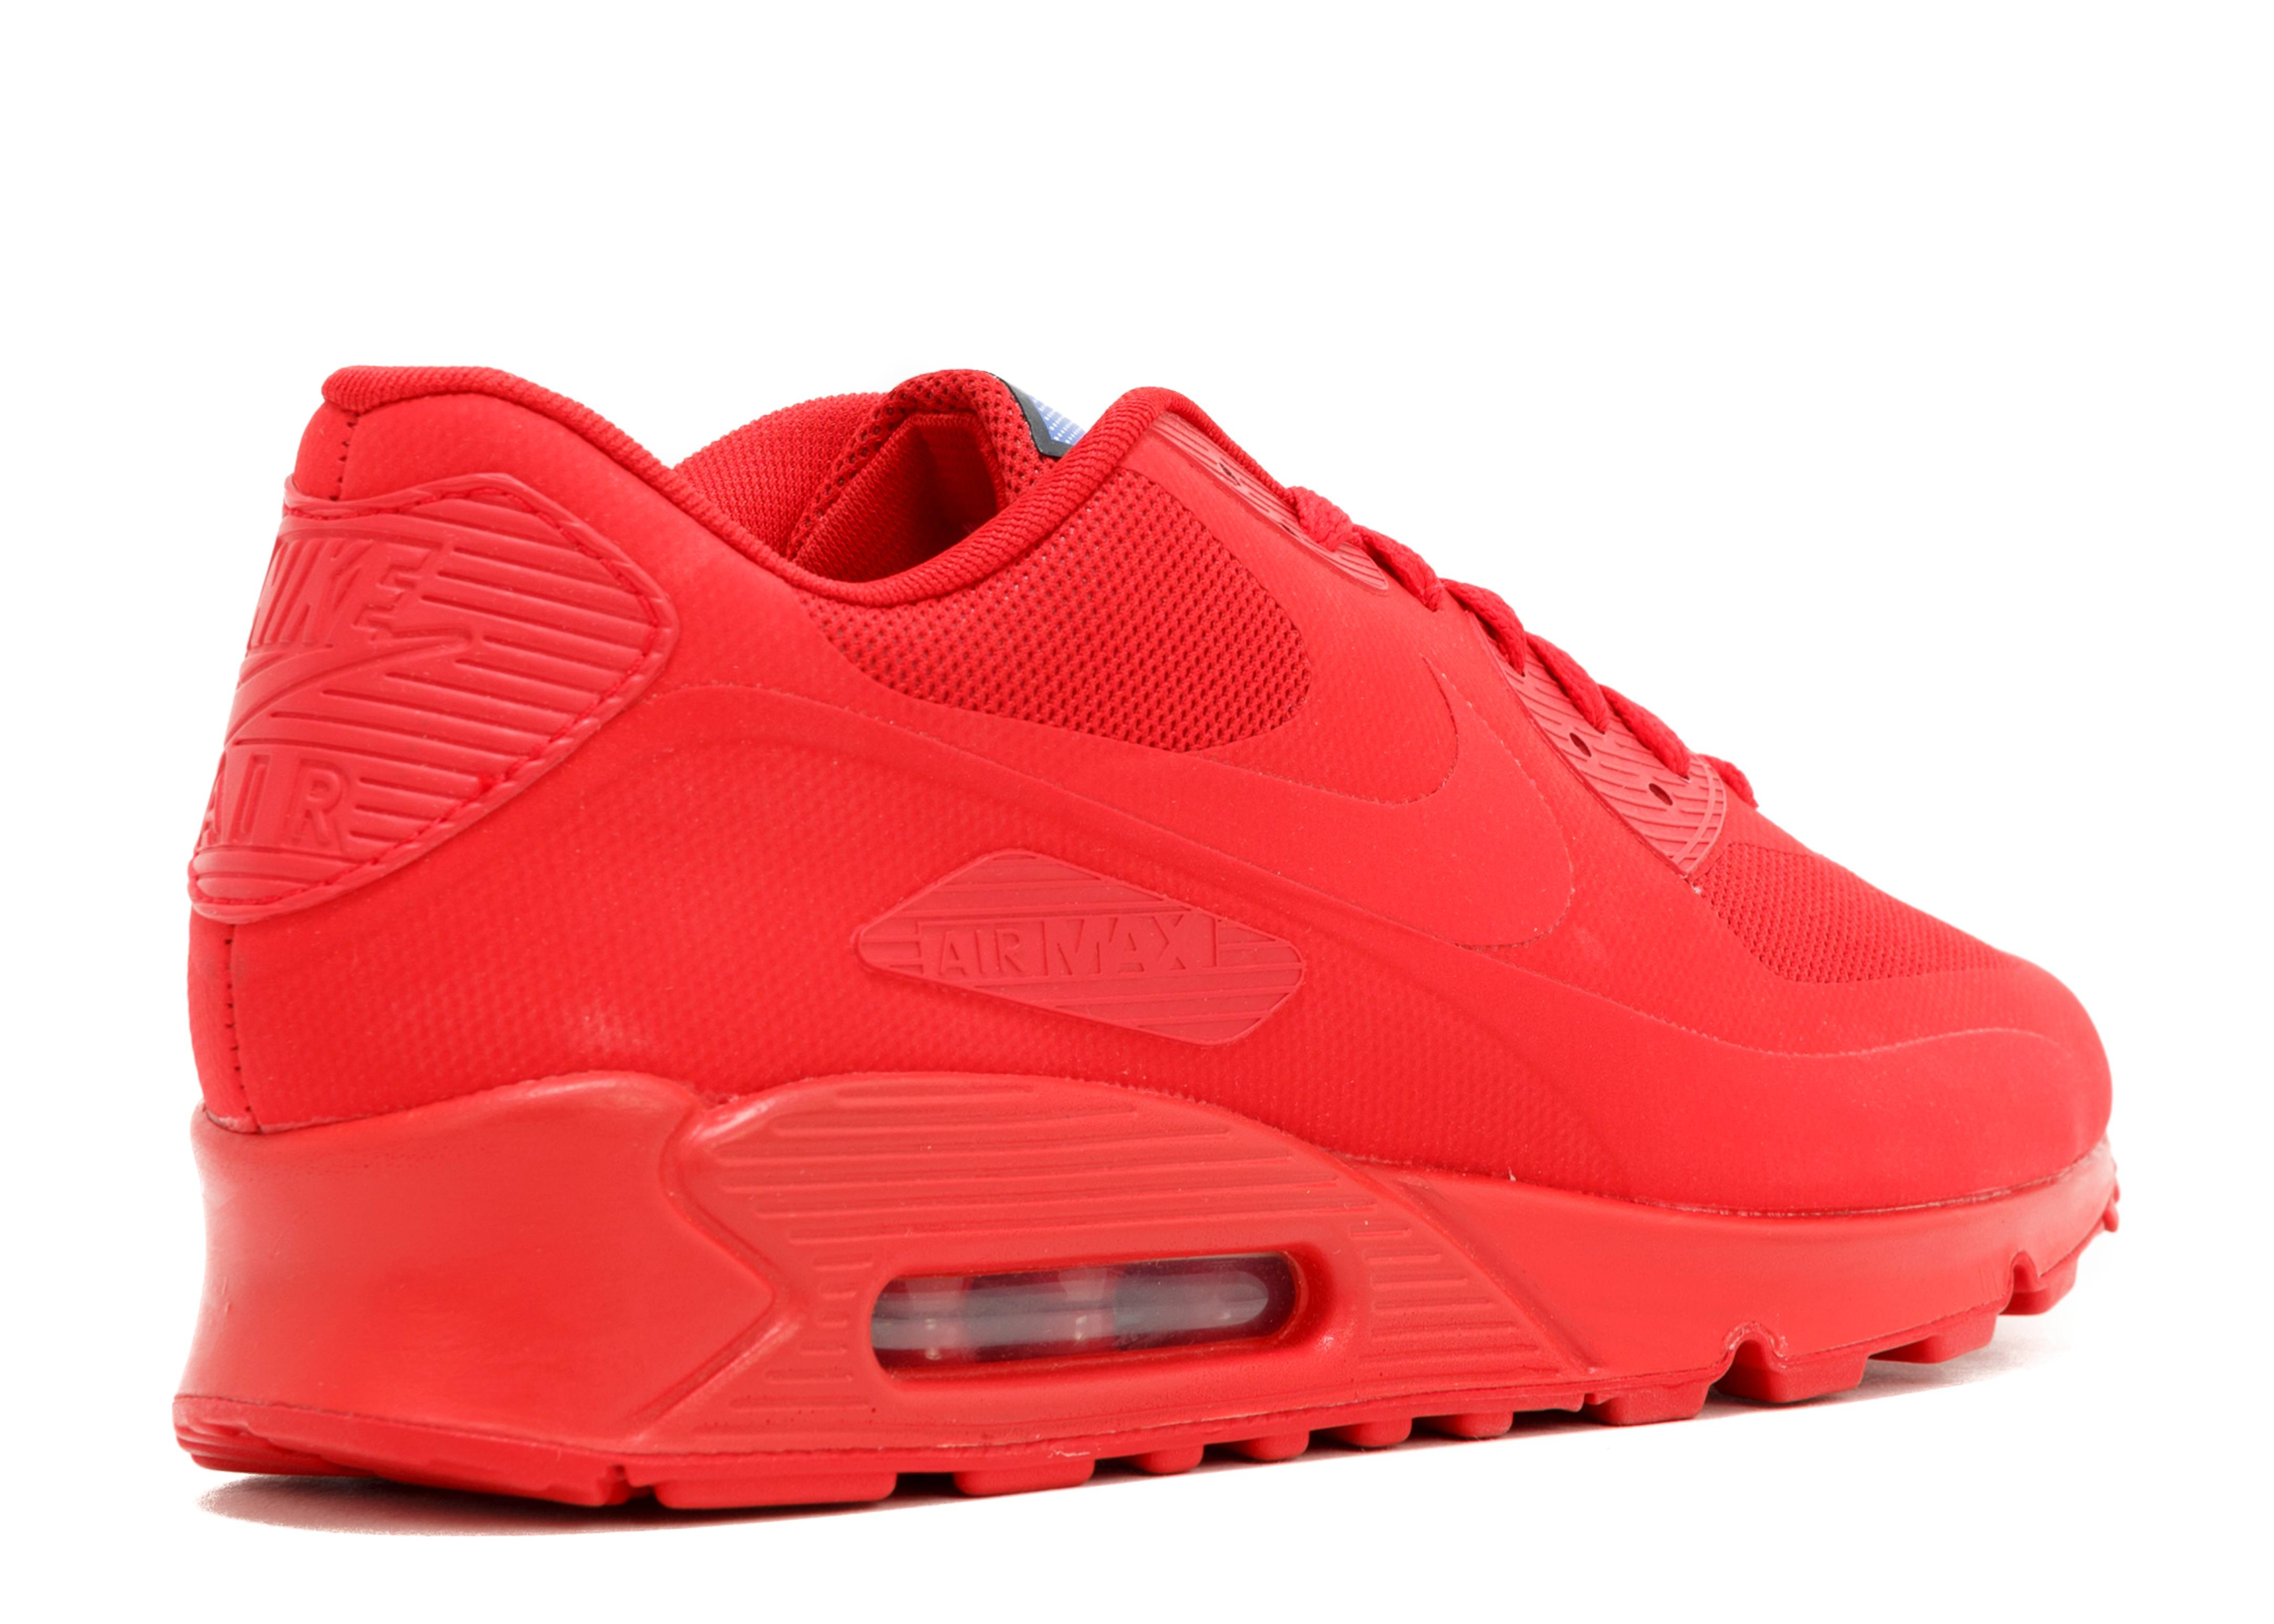 nike air max 90 hyp qs usa $ 700 $ 700 us size size guide size